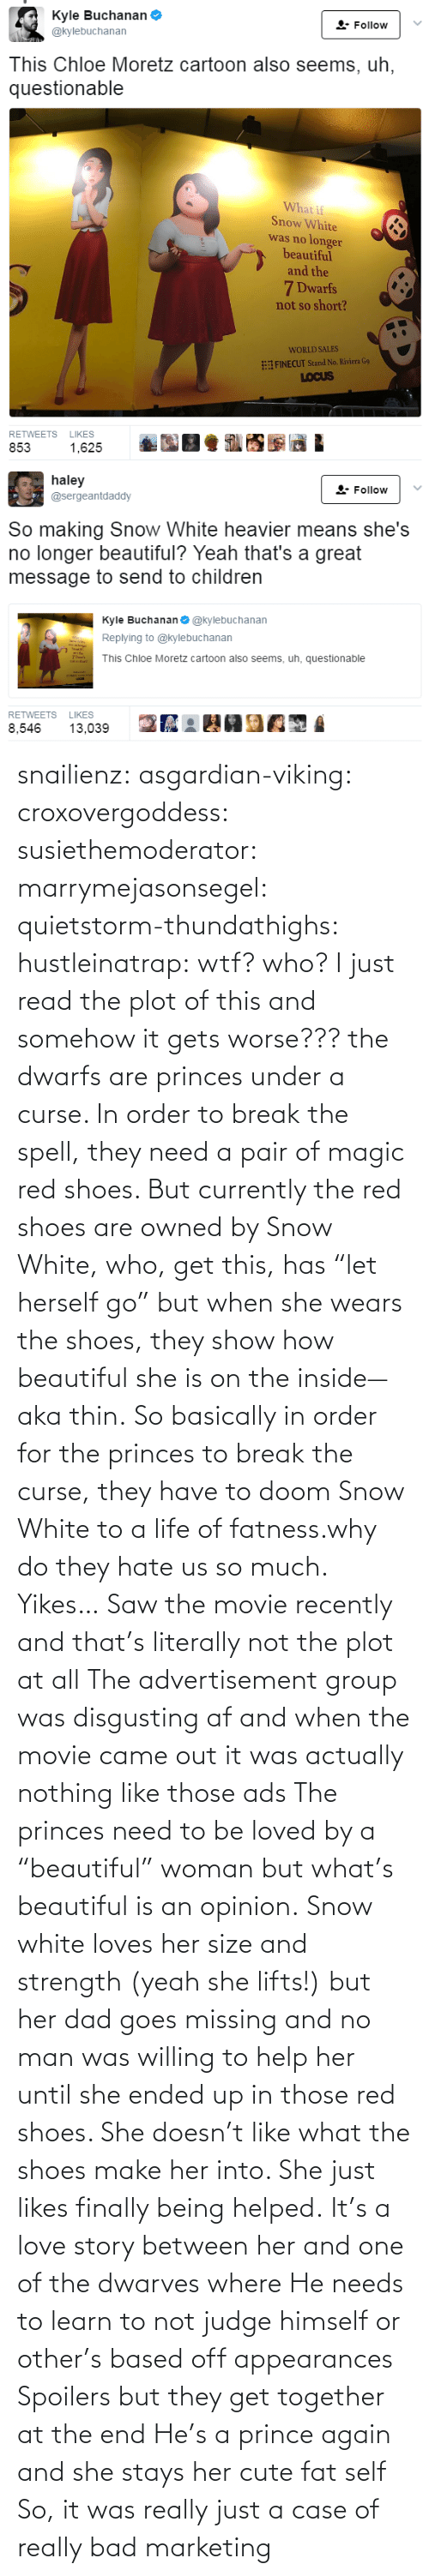 "Where: snailienz: asgardian-viking:  croxovergoddess:  susiethemoderator:  marrymejasonsegel:   quietstorm-thundathighs:  hustleinatrap: wtf?  who?   I just read the plot of this and somehow it gets worse??? the dwarfs are princes under a curse. In order to break the spell, they need a pair of magic red shoes. But currently the red shoes are owned by Snow White, who, get this, has ""let herself go"" but when she wears the shoes, they show how beautiful she is on the inside—aka thin. So basically in order for the princes to break the curse, they have to doom Snow White to a life of fatness.why do they hate us so much.   Yikes…    Saw the movie recently and that's literally not the plot at all The advertisement group was disgusting af and when the movie came out it was actually nothing like those ads The princes need to be loved by a ""beautiful"" woman but what's beautiful is an opinion. Snow white loves her size and strength (yeah she lifts!) but her dad goes missing and no man was willing to help her until she ended up in those red shoes. She doesn't like what the shoes make her into. She just likes finally being helped. It's a love story between her and one of the dwarves where He needs to learn to not judge himself or other's based off appearances  Spoilers but they get together at the end He's a prince again and she stays her cute fat self  So, it was really just a case of really bad marketing"